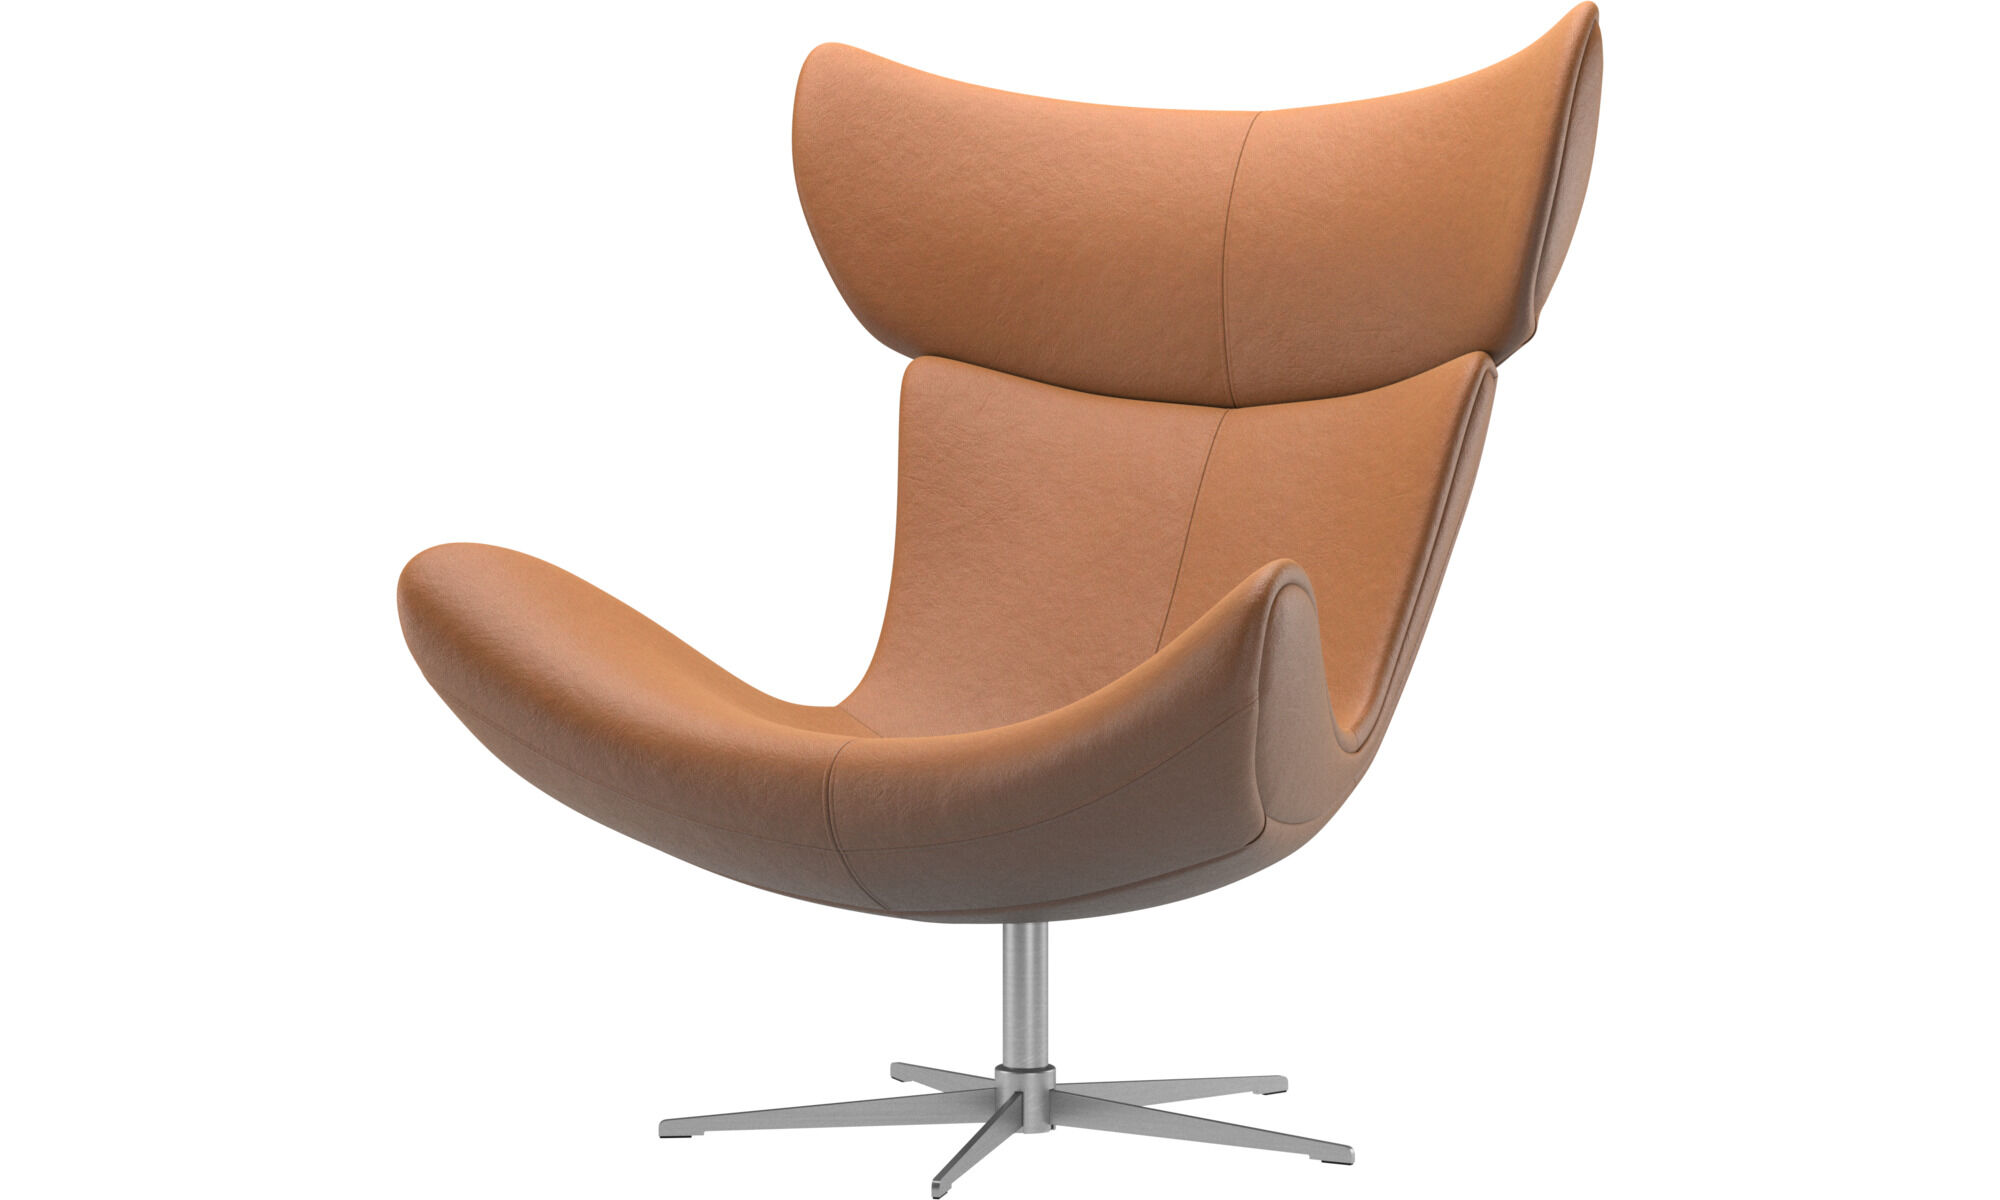 Sessel Up 2000 Modern Chairs For Your Home Contemporary Design From Boconcept